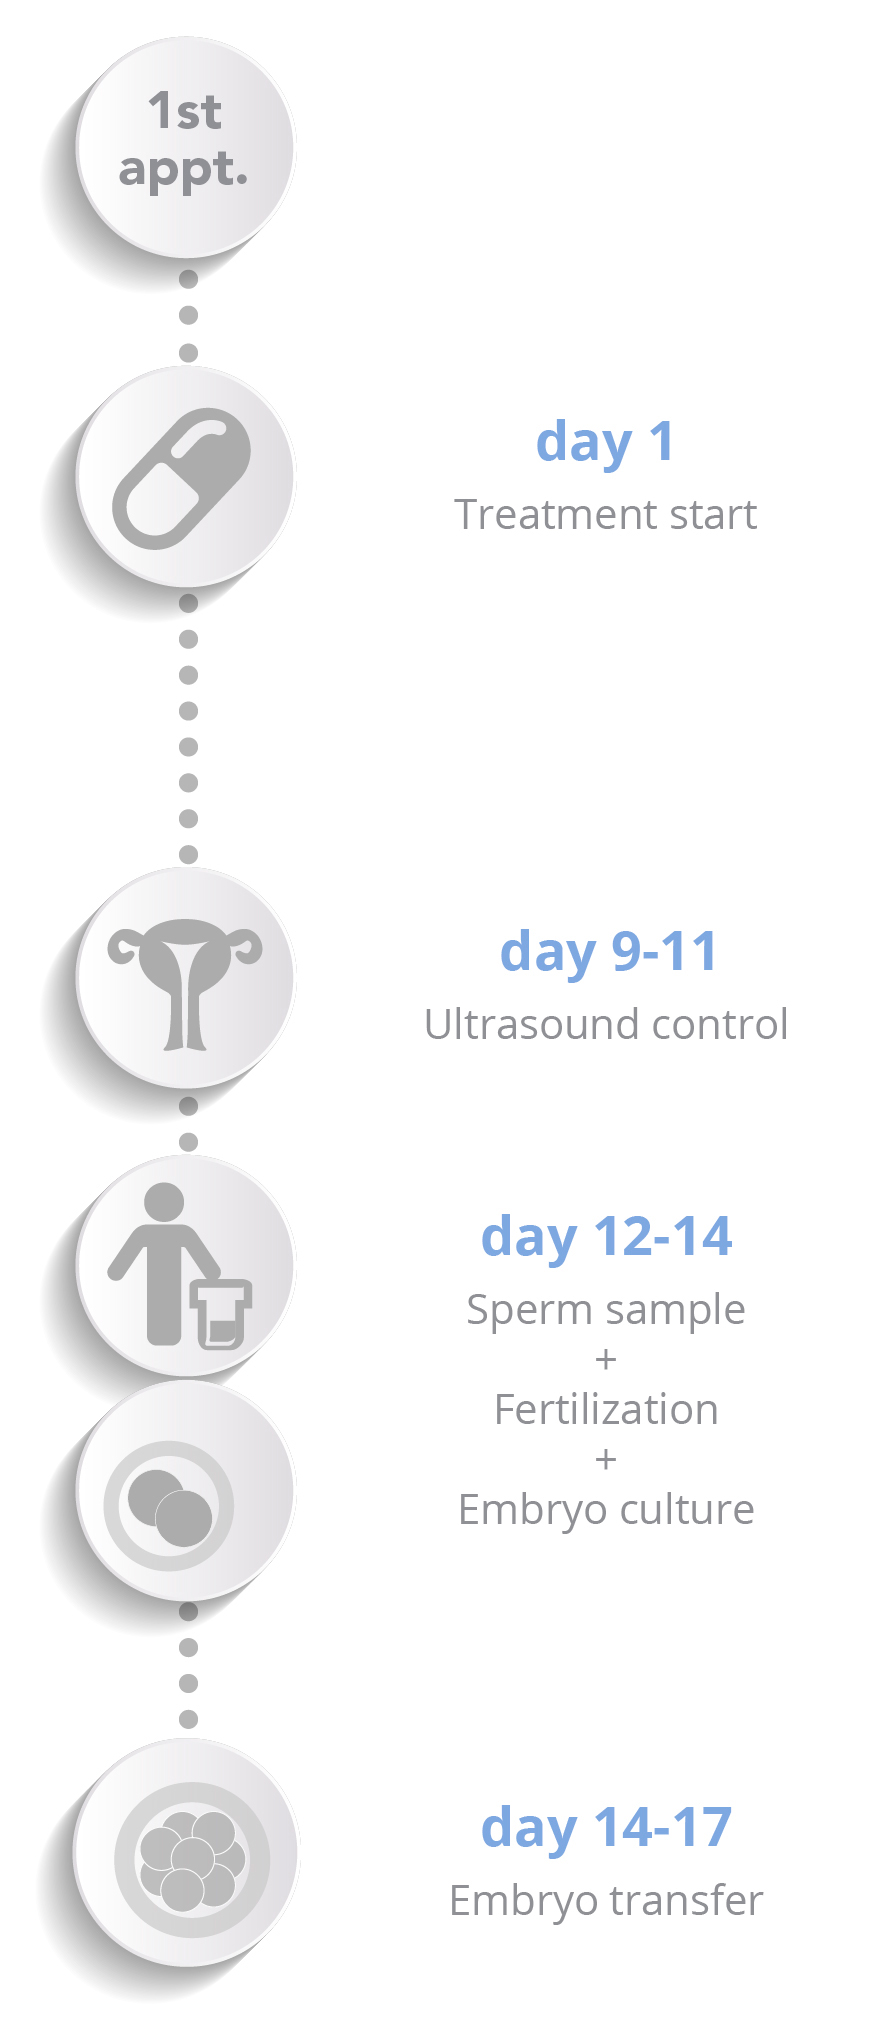 Egg donation - Vertical schema